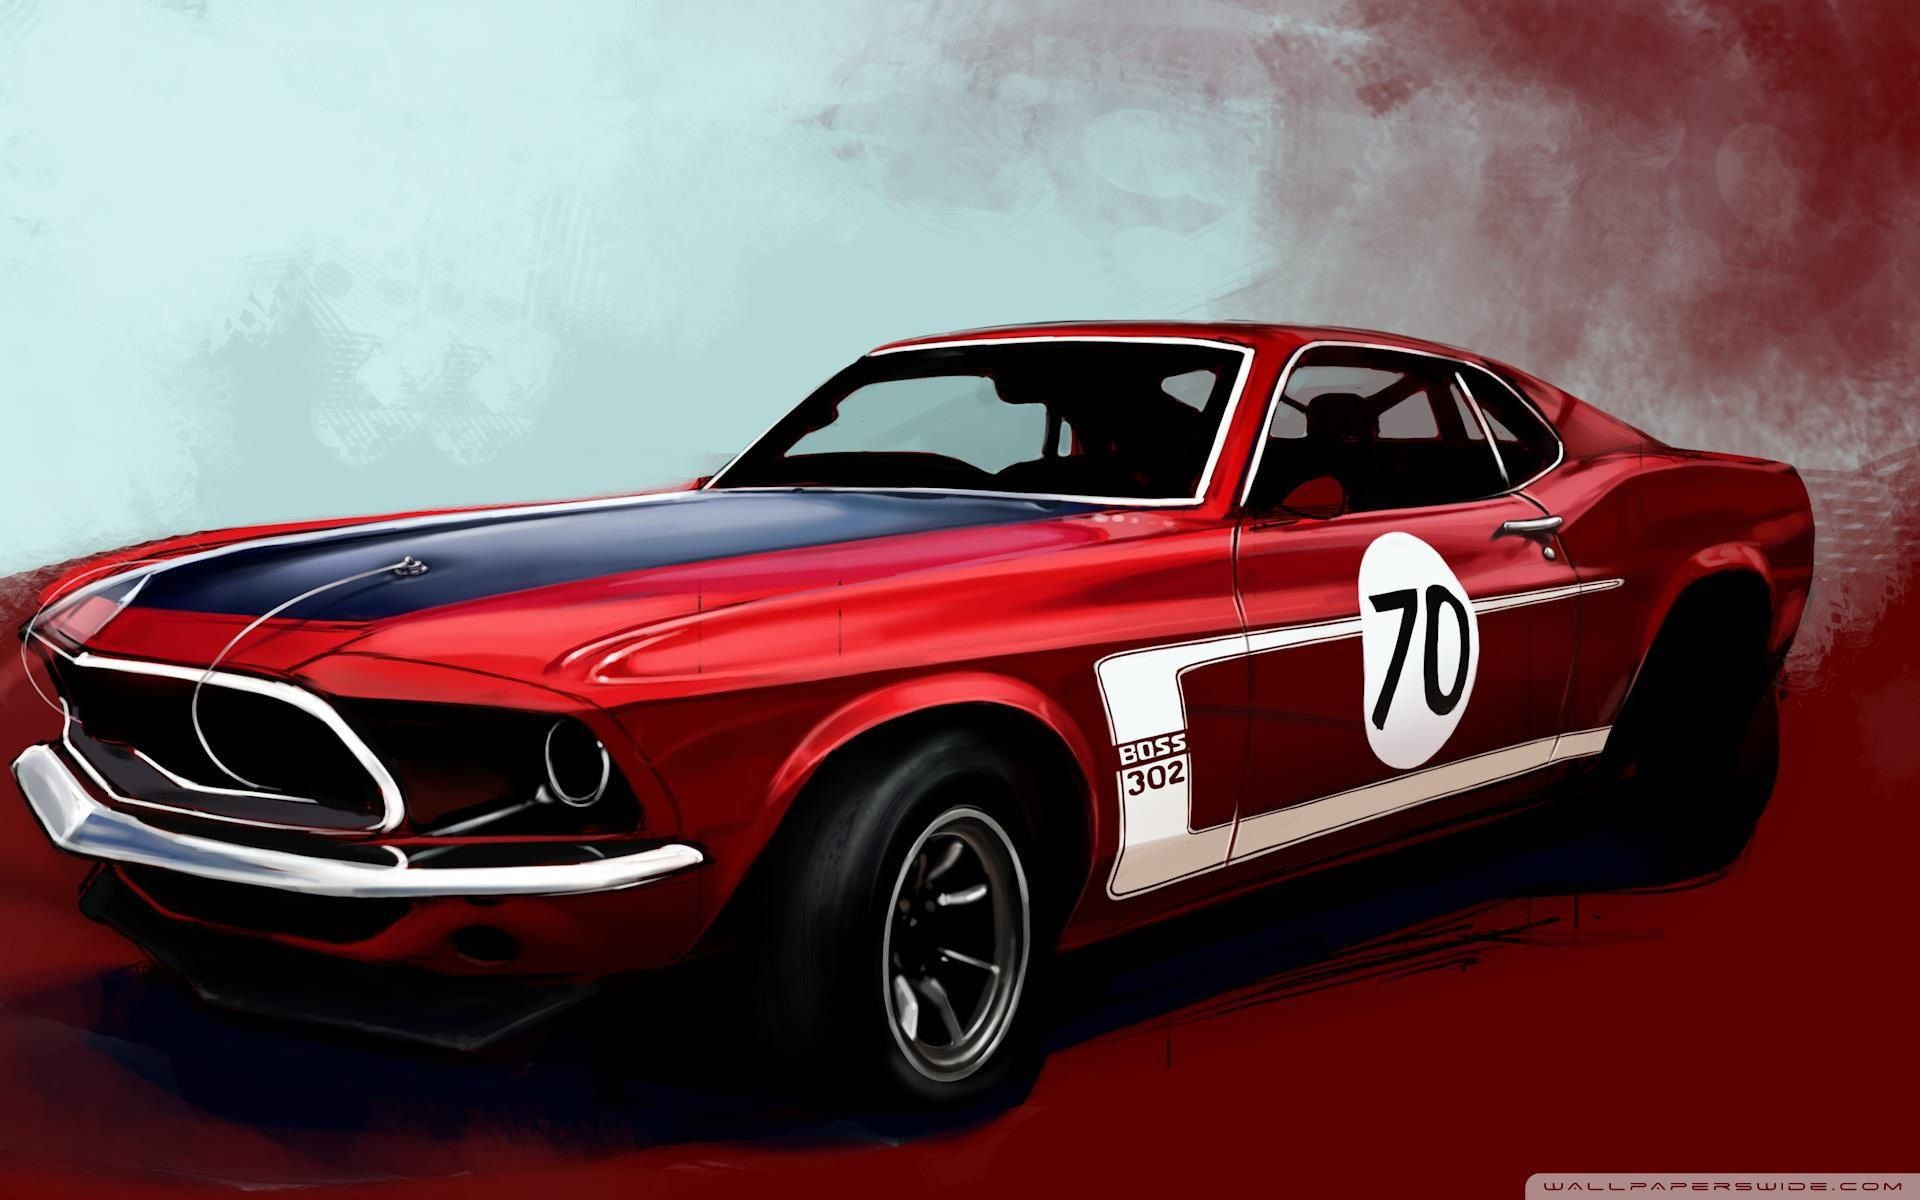 69 BOSS 302 | Old Cars Are the Best!! | Pinterest | Sweet rides ...